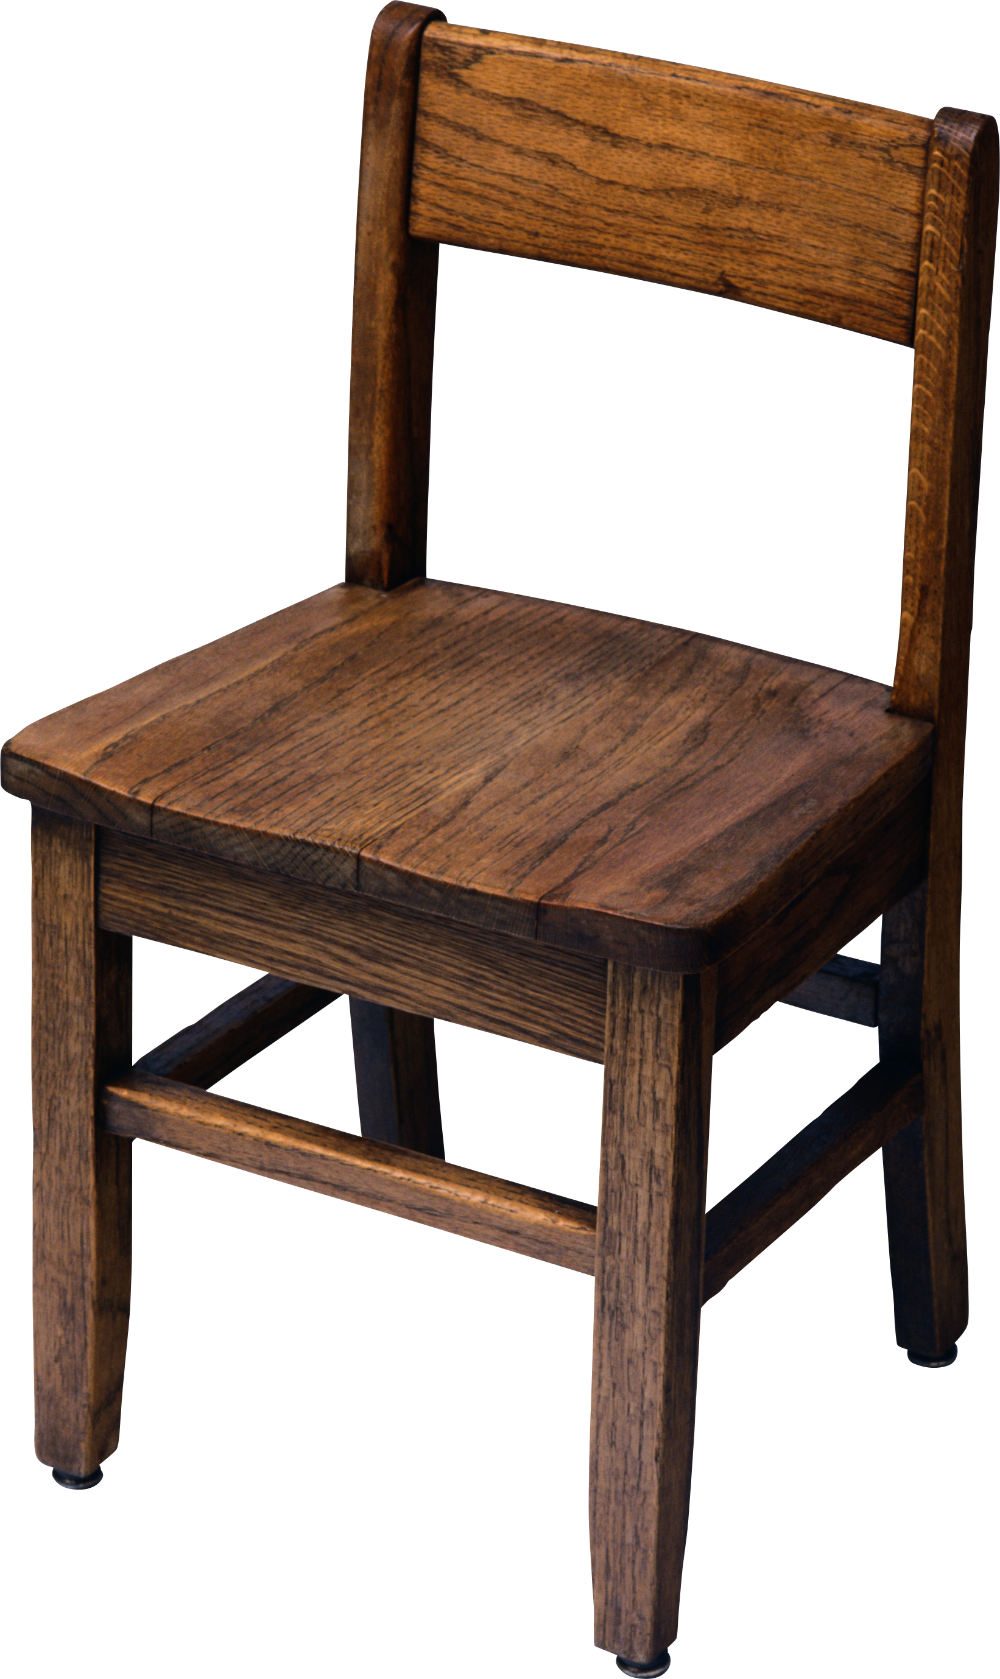 Chair Png Image Old Wooden Chairs Wooden Chair Chair